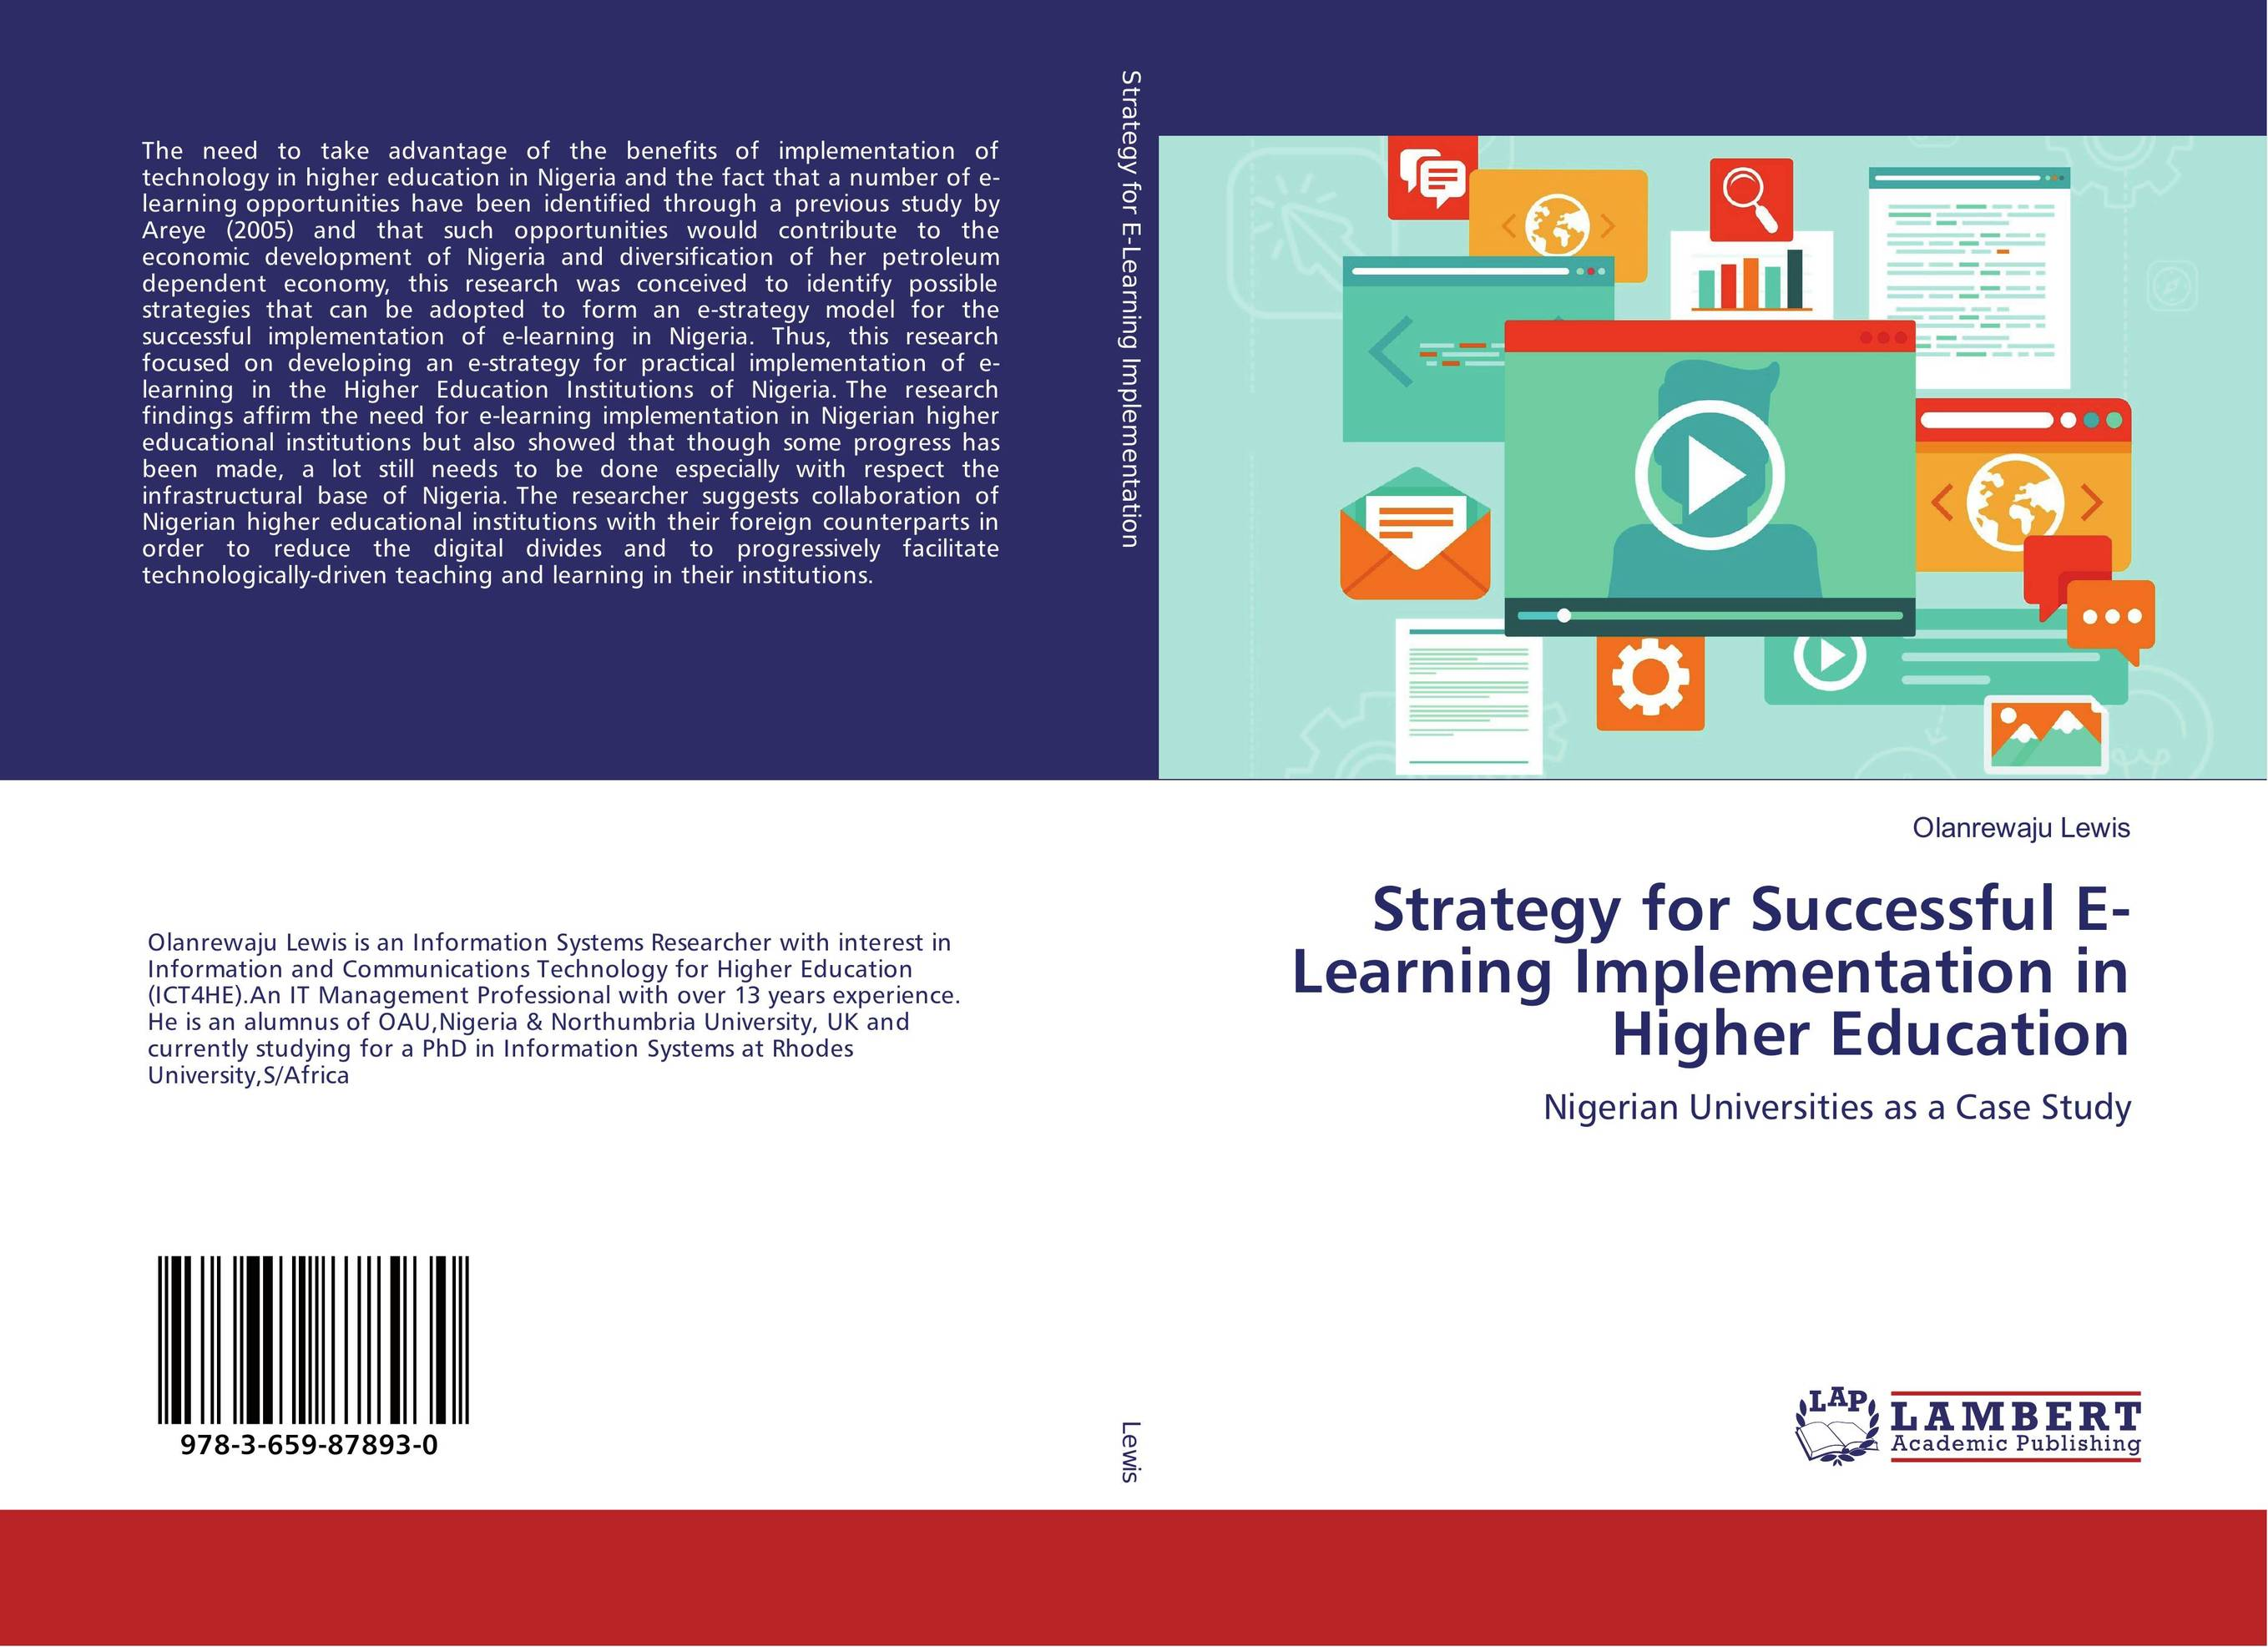 Strategy for Successful E-Learning Implementation in Higher Education driven to distraction